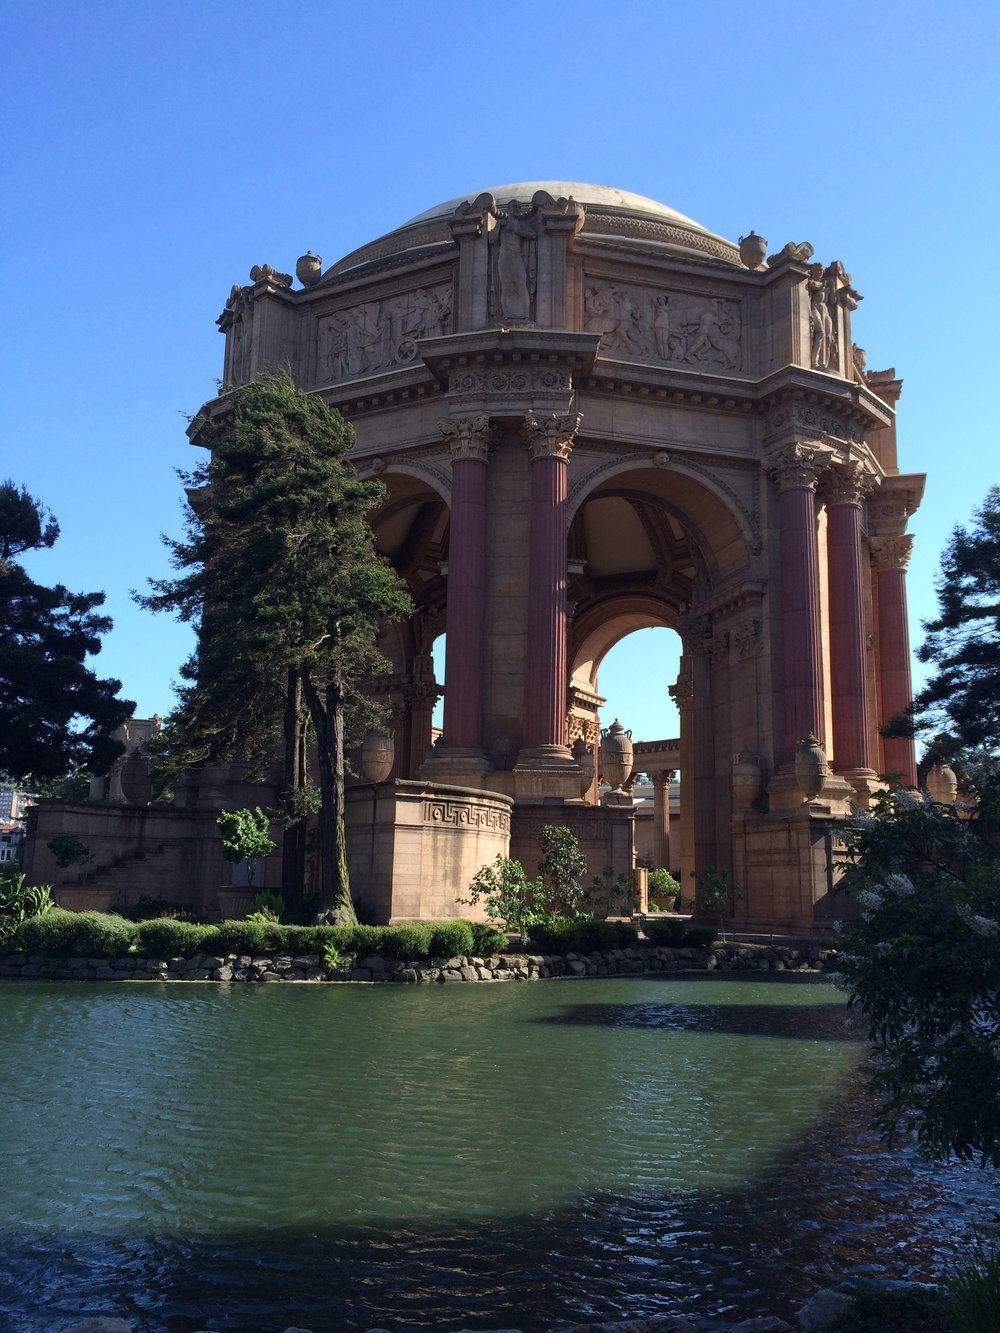 The Rotunda at the Palace of Fine Arts